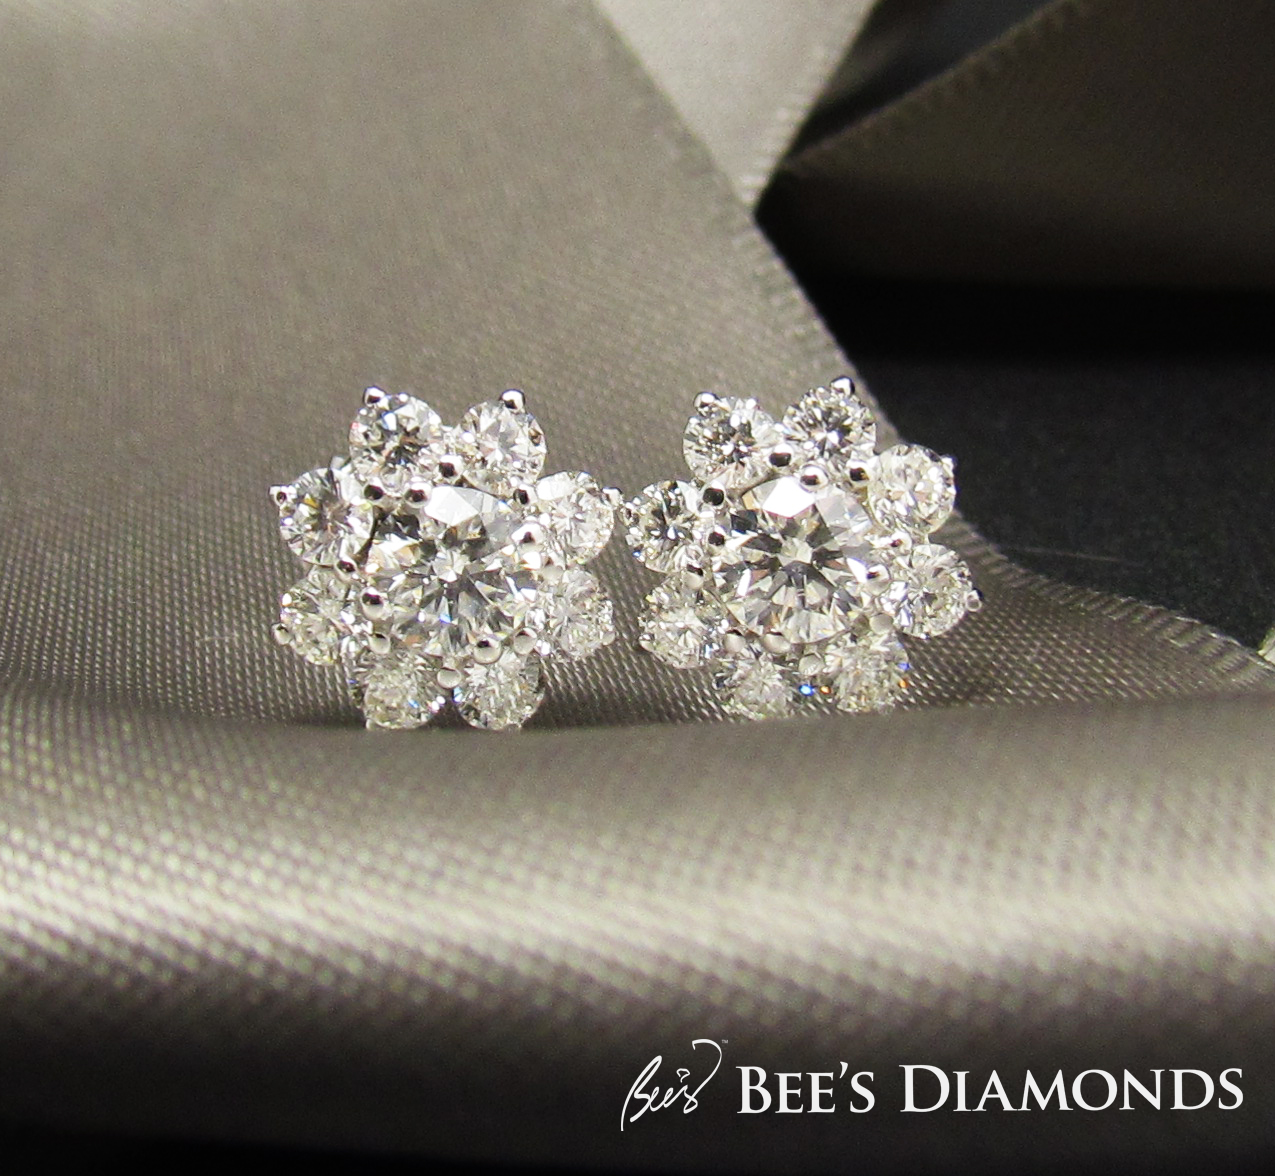 Floral solitaire diamond stud earrings | Bee's Diamonds